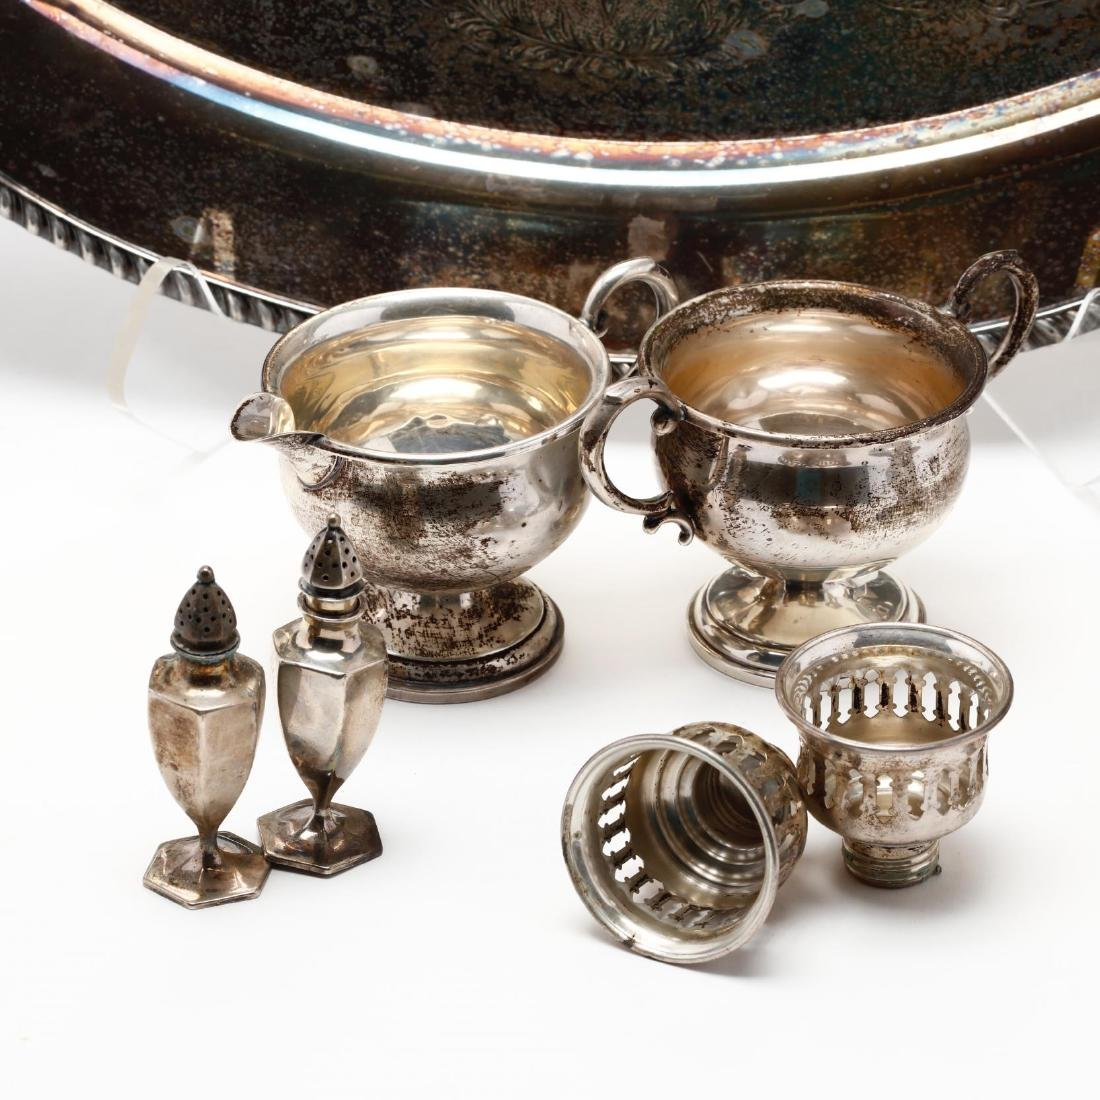 A Silverplate Tray with Sterling Silver Holloware - 2